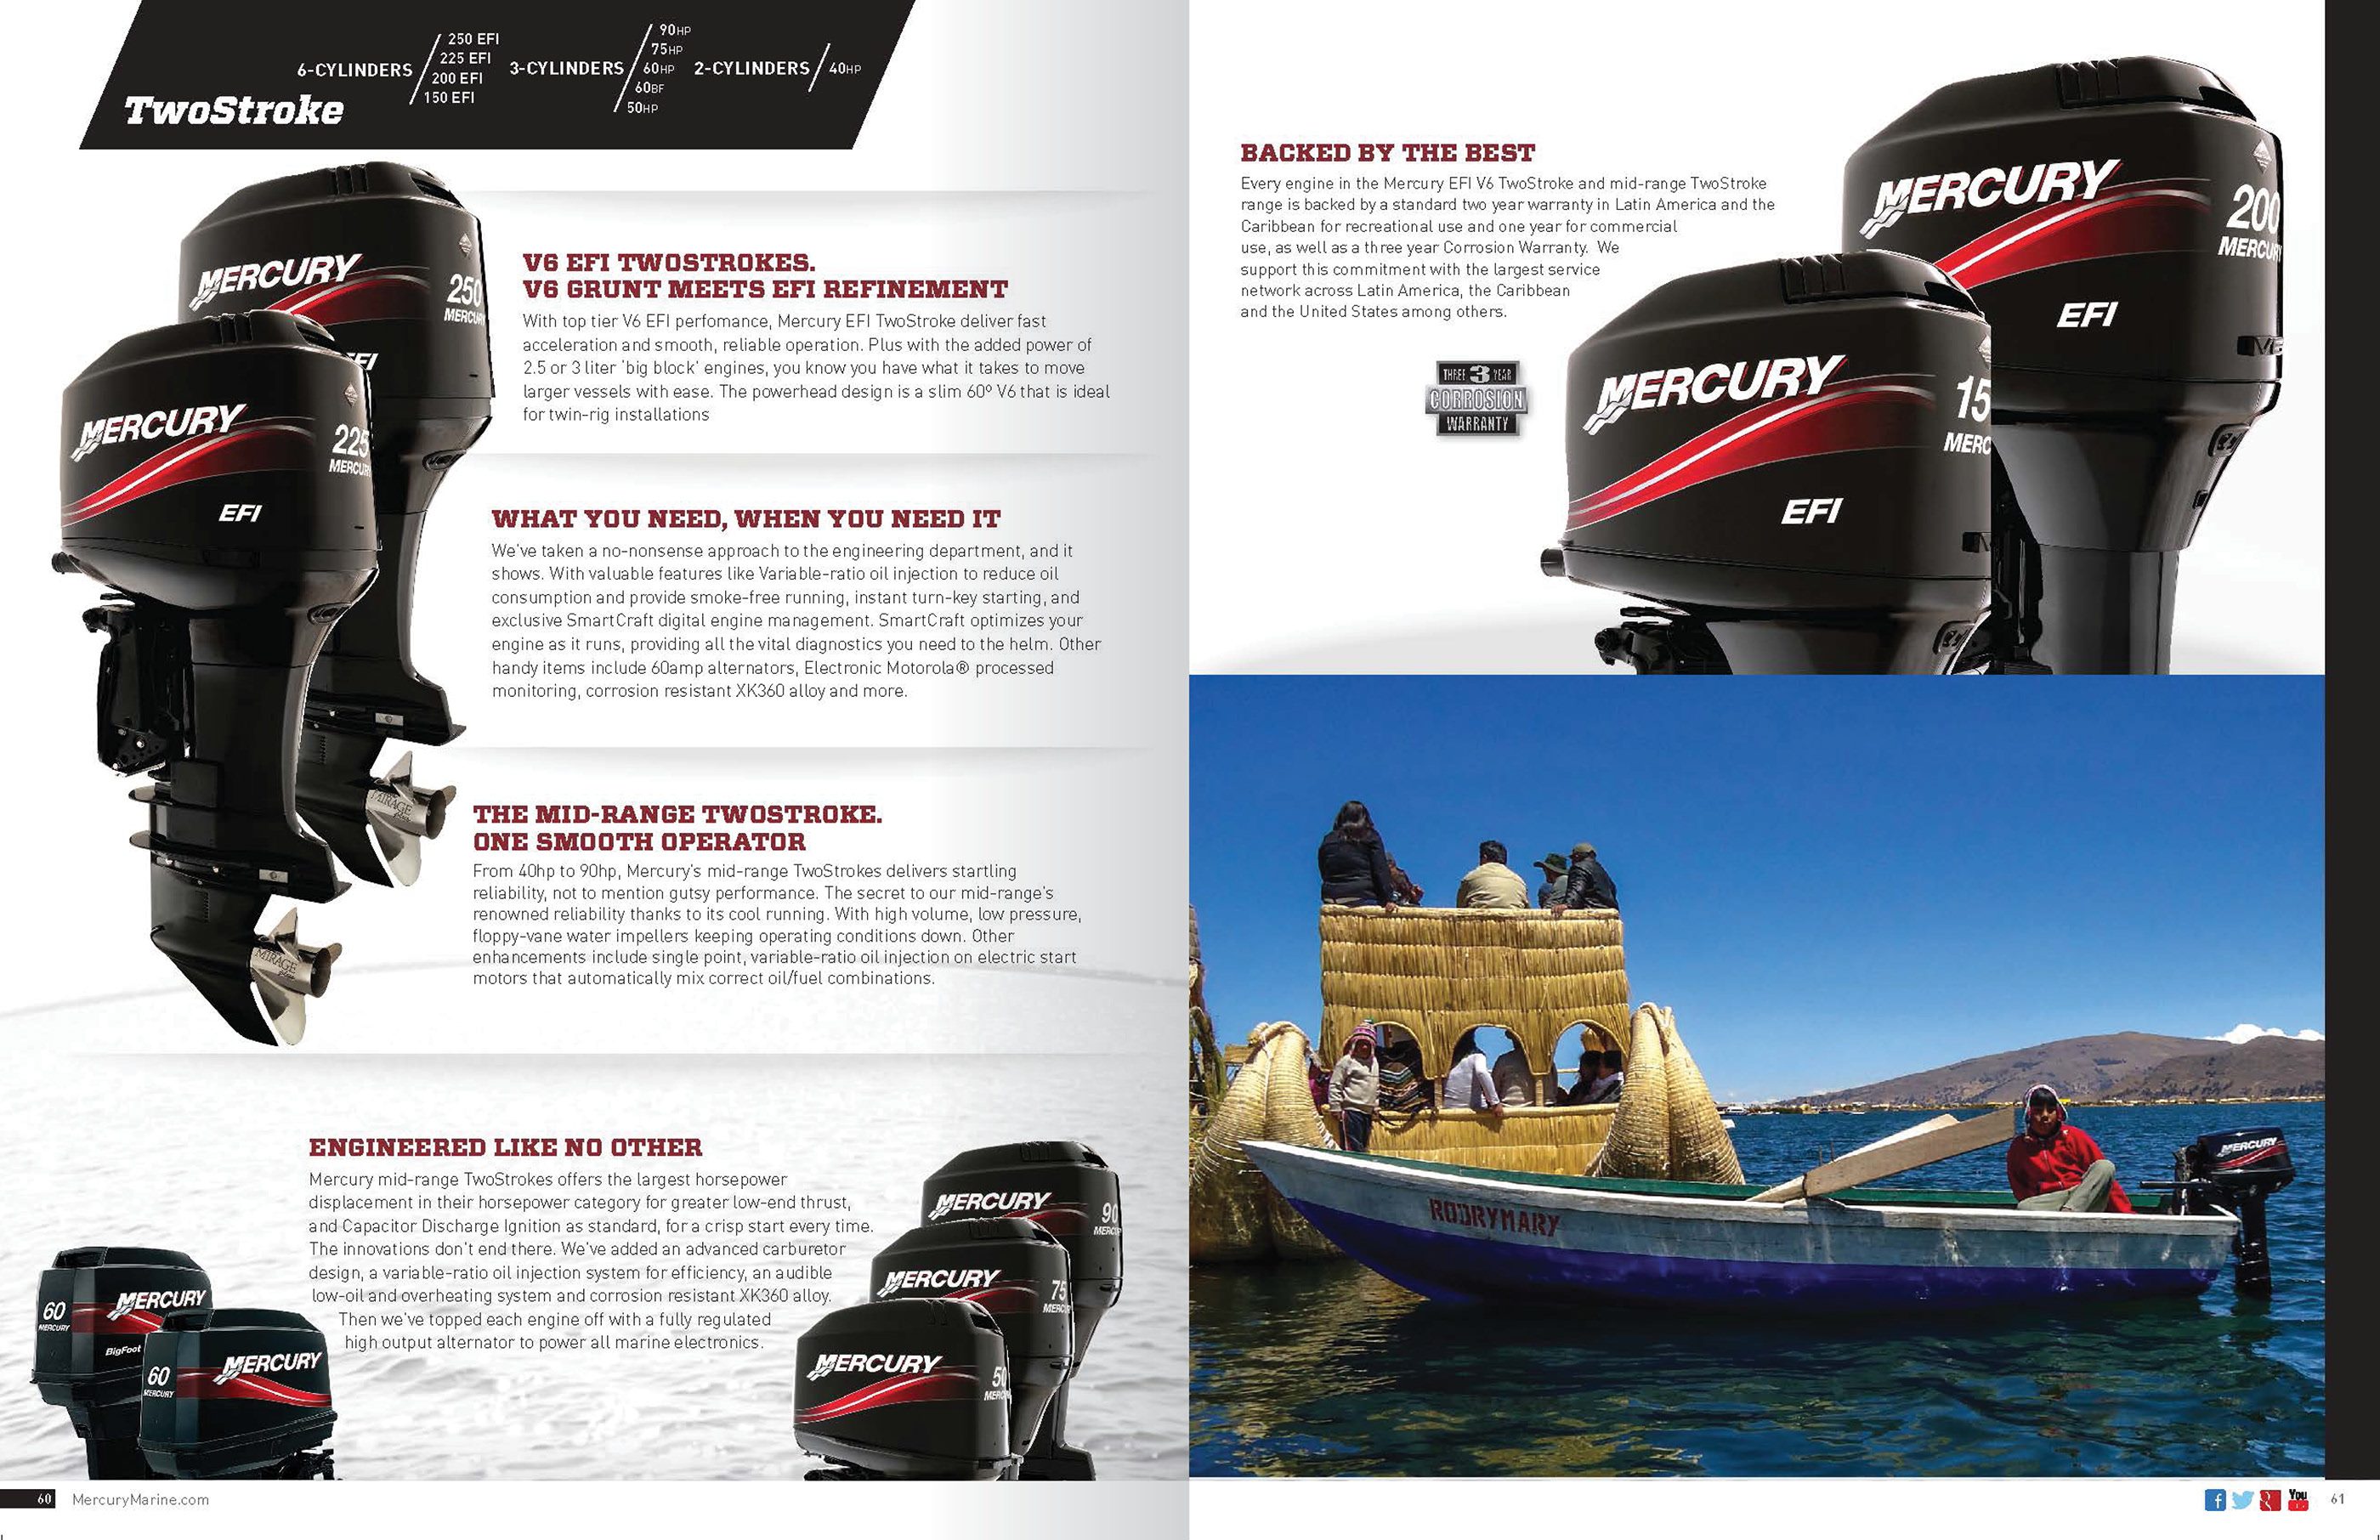 Mercury Marine - Outboard Brochure, Latin America on Behance